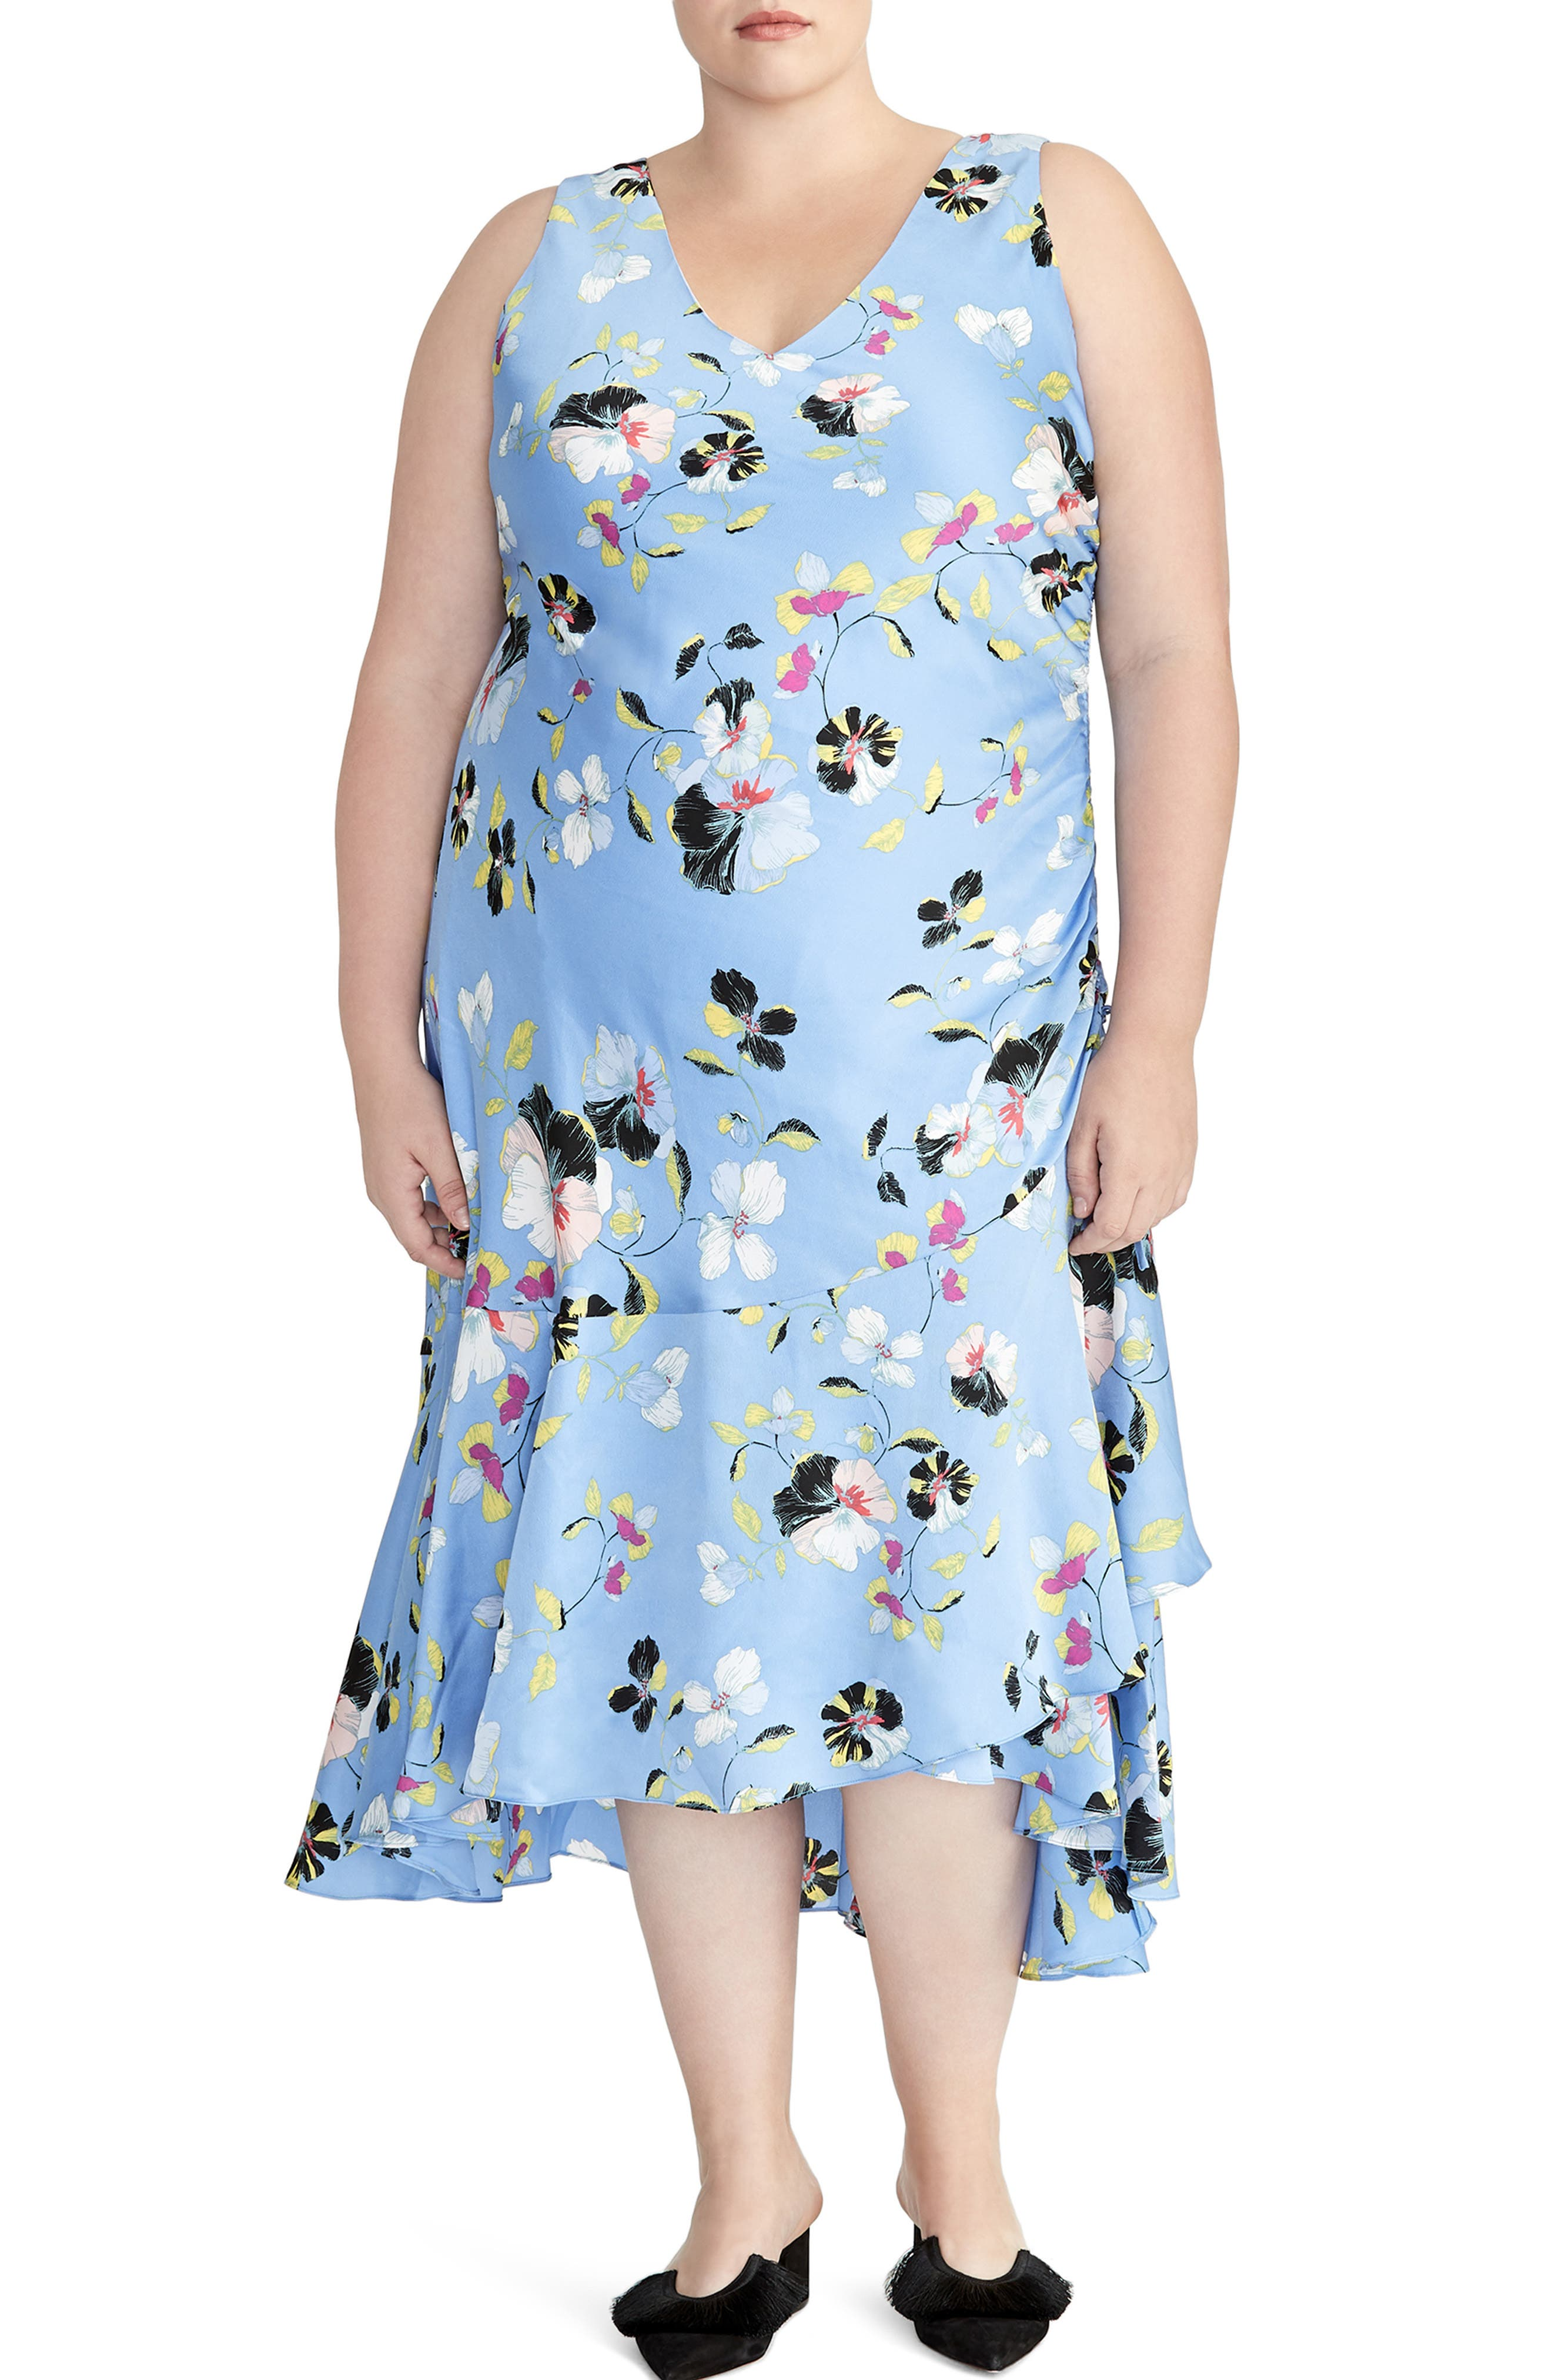 1940s Plus Size Fashion: Style Advice from 1940s to Today Plus Size Womens Rachel Roy Collection Orchid Midi Dress Size 24W - Blue $149.00 AT vintagedancer.com